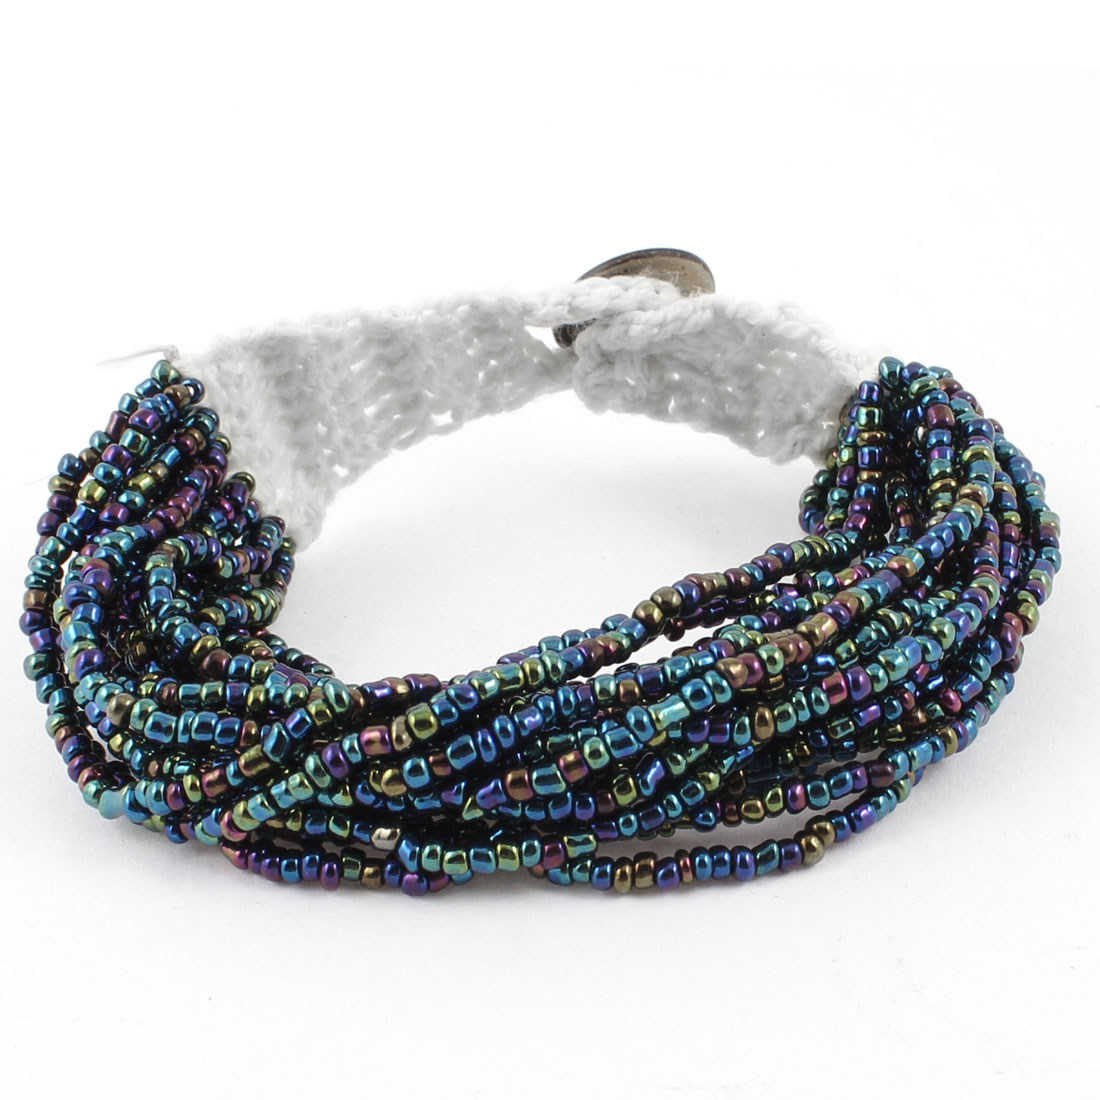 Colorful Multilayer Beads String Button Closure Wrist Bracelet for Women